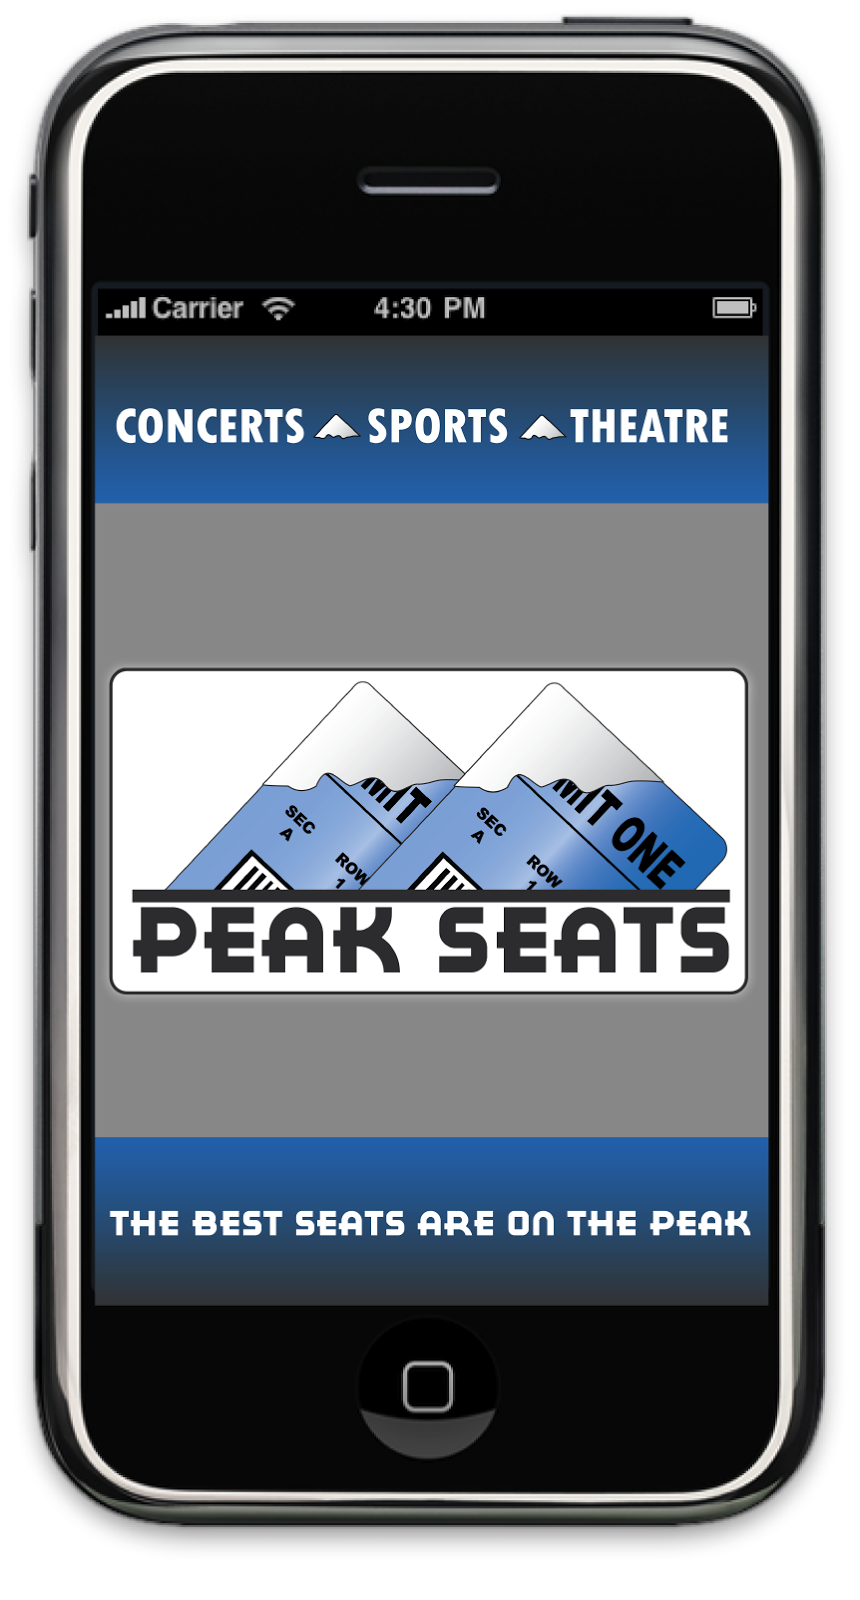 The Ticket Blog Concerts Sports Theater Las Vegas Front Row Vip Tickets